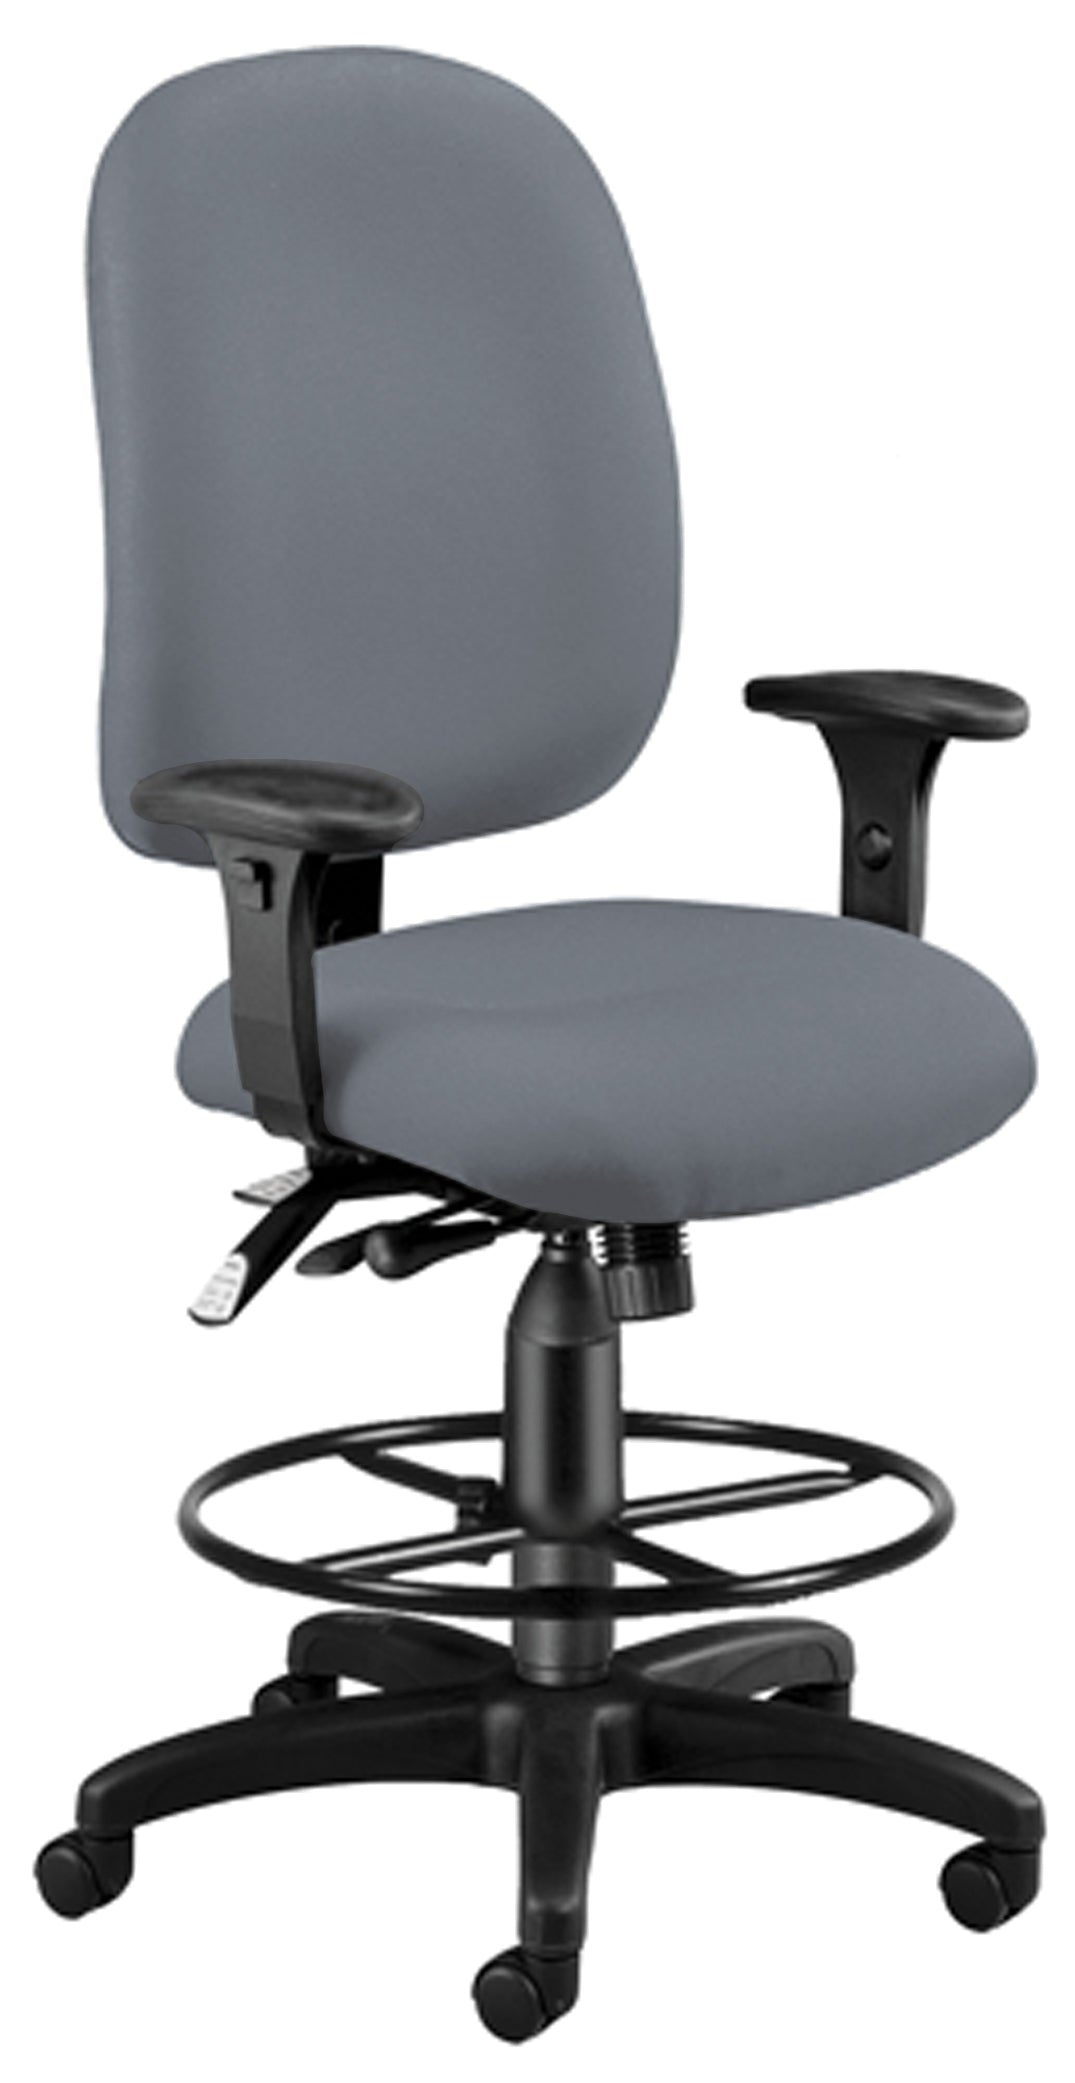 ComfySeat Ergonomic Multi-Adjustable Fabric Drafting Kit Arm Chair